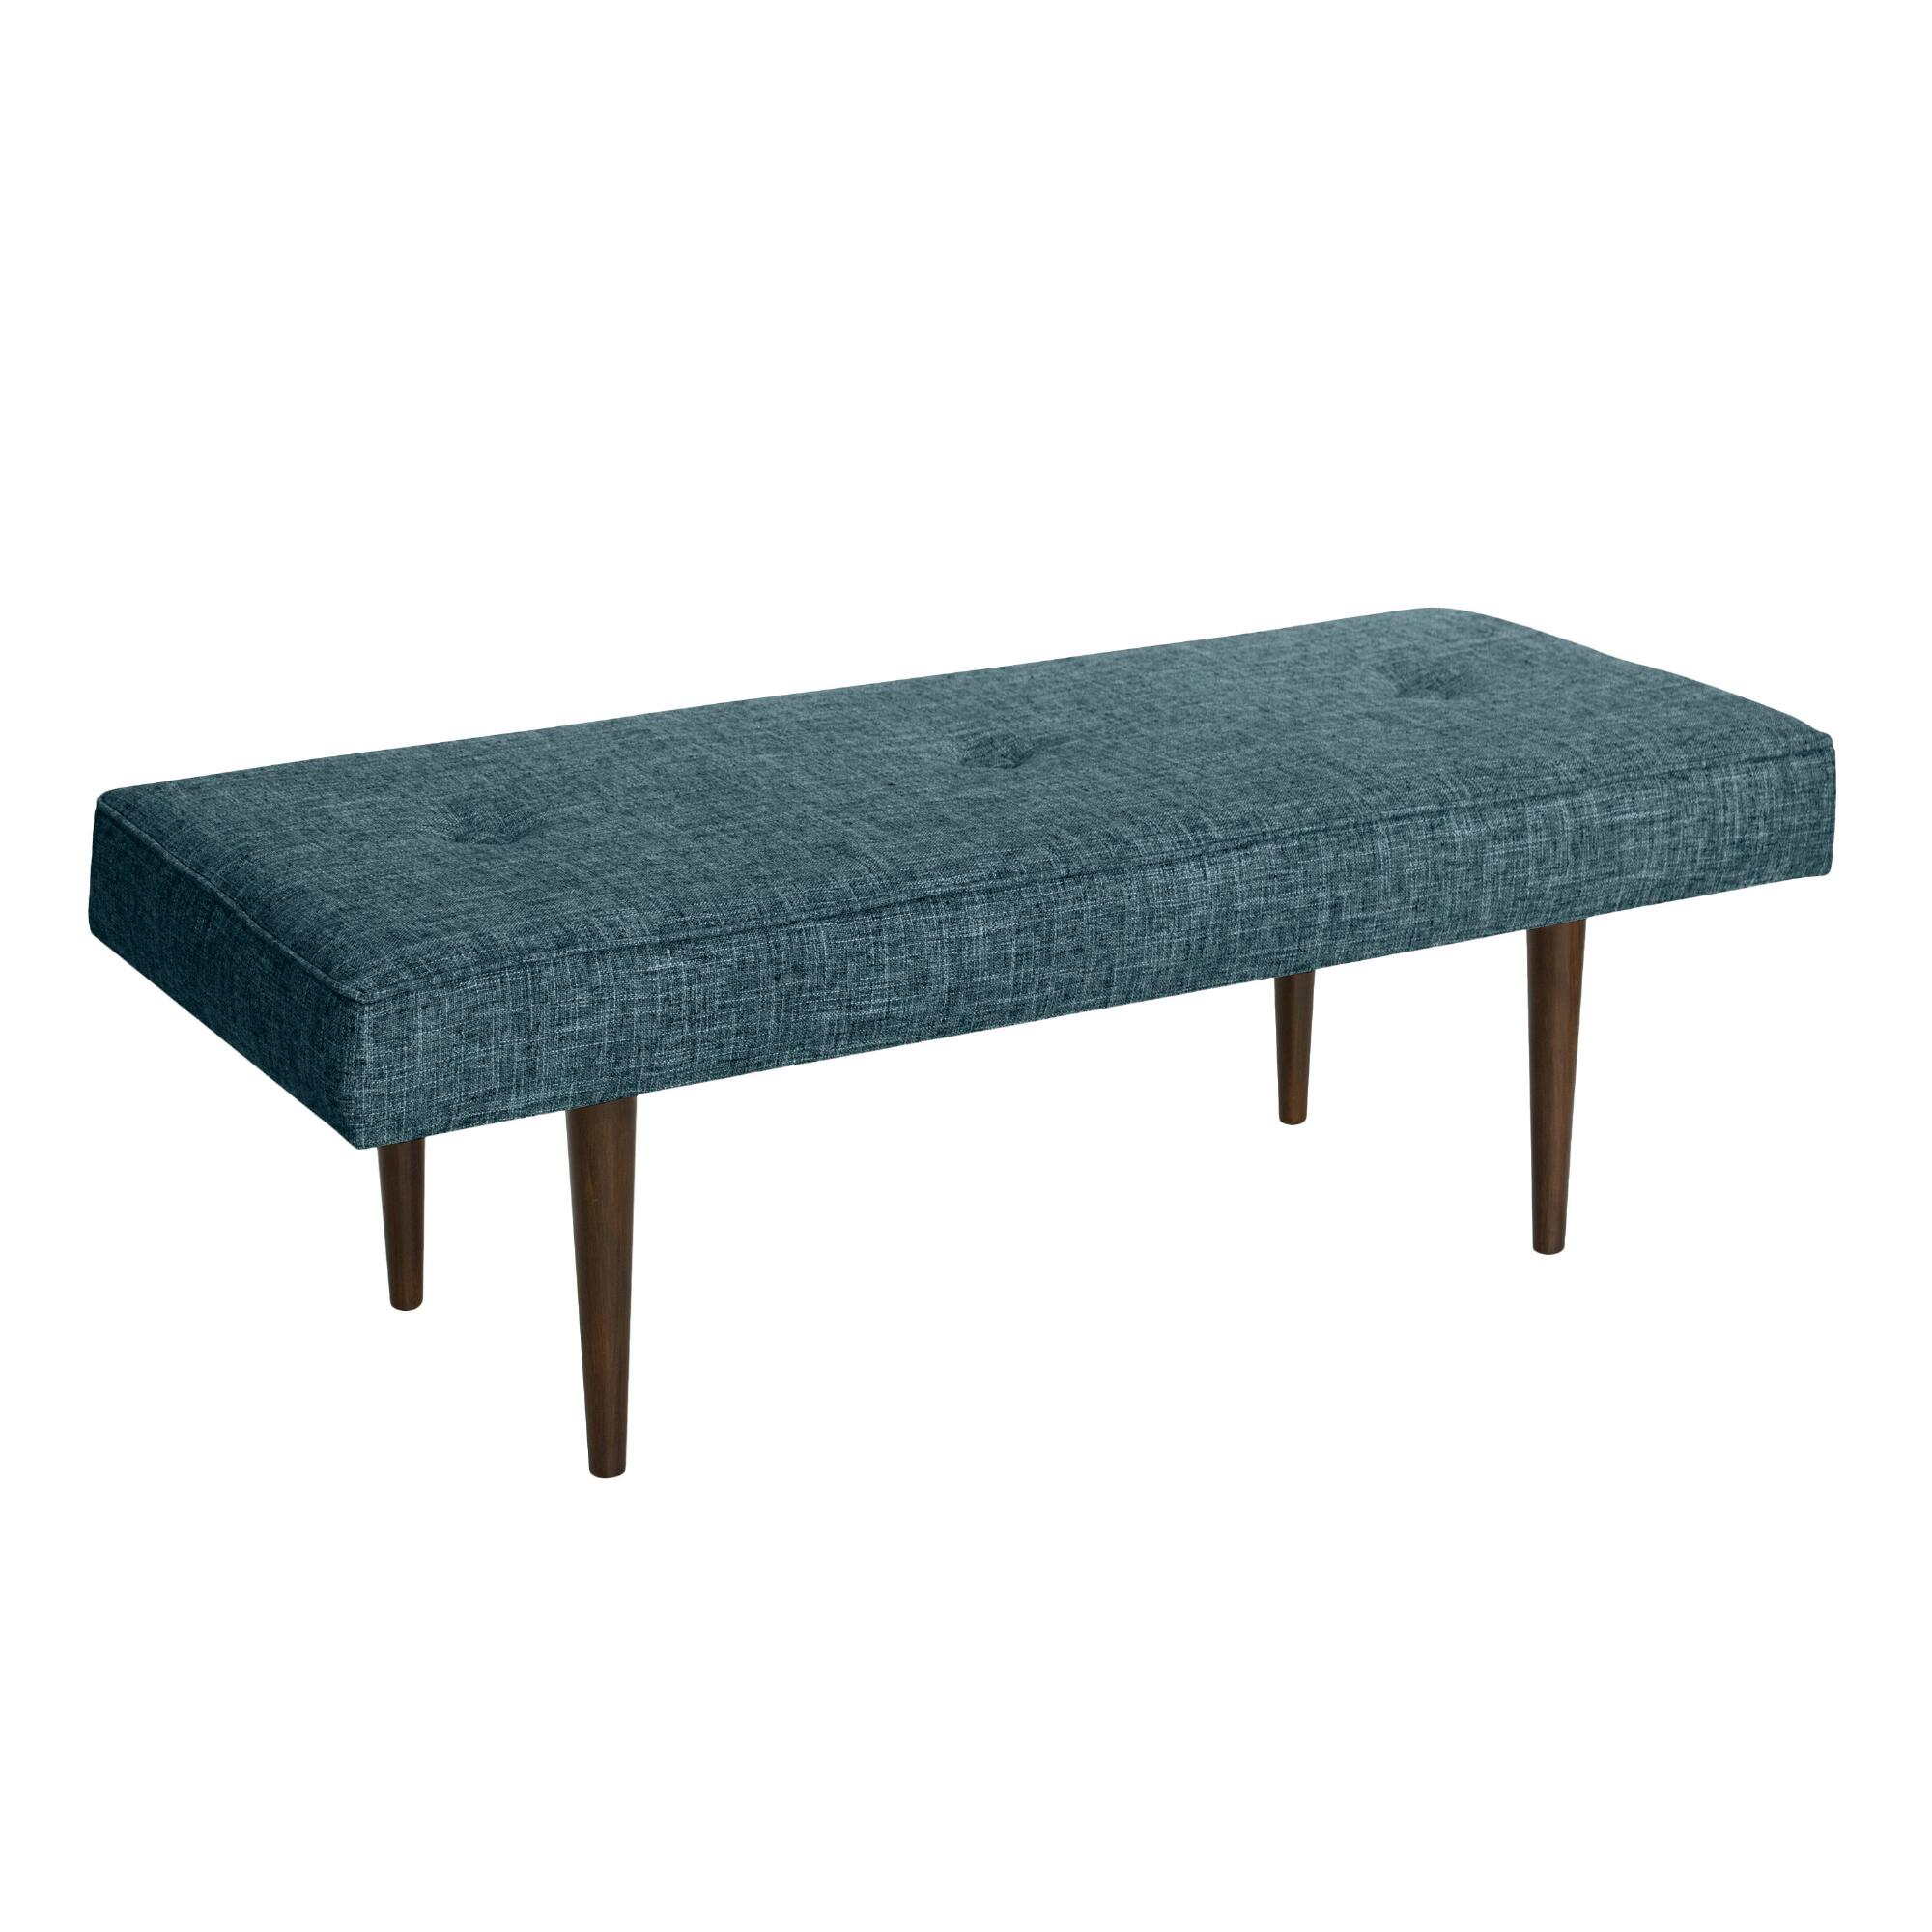 Tufted Dining Bench Cushion